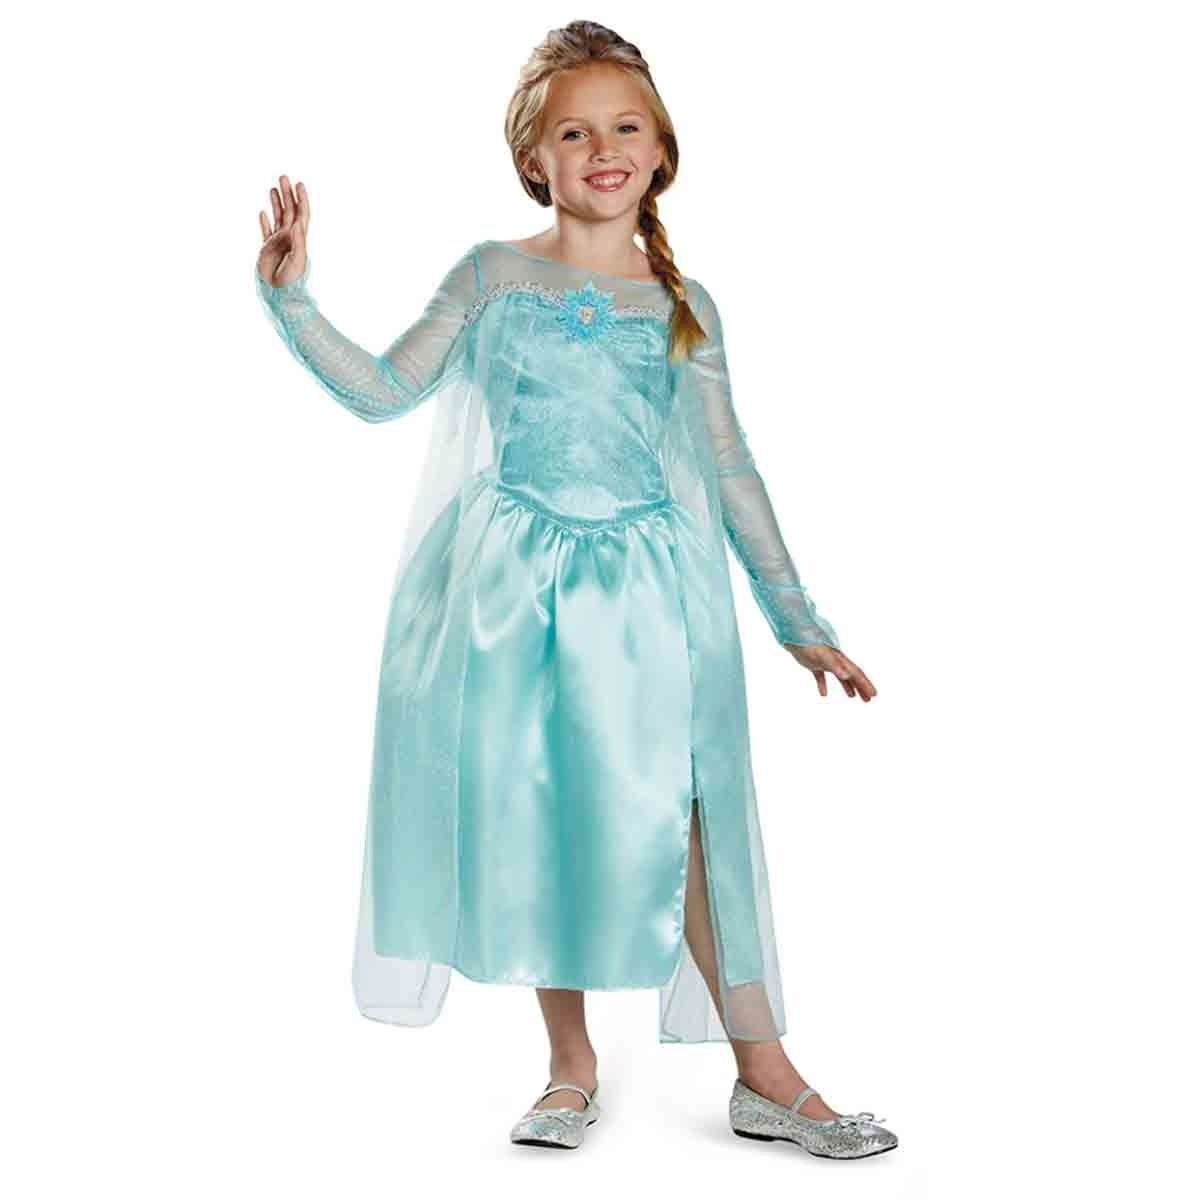 Image 0 of Disney Frozen Elsa Snow Queen Classic Blue Dress Child Costume 76906 Disguise -